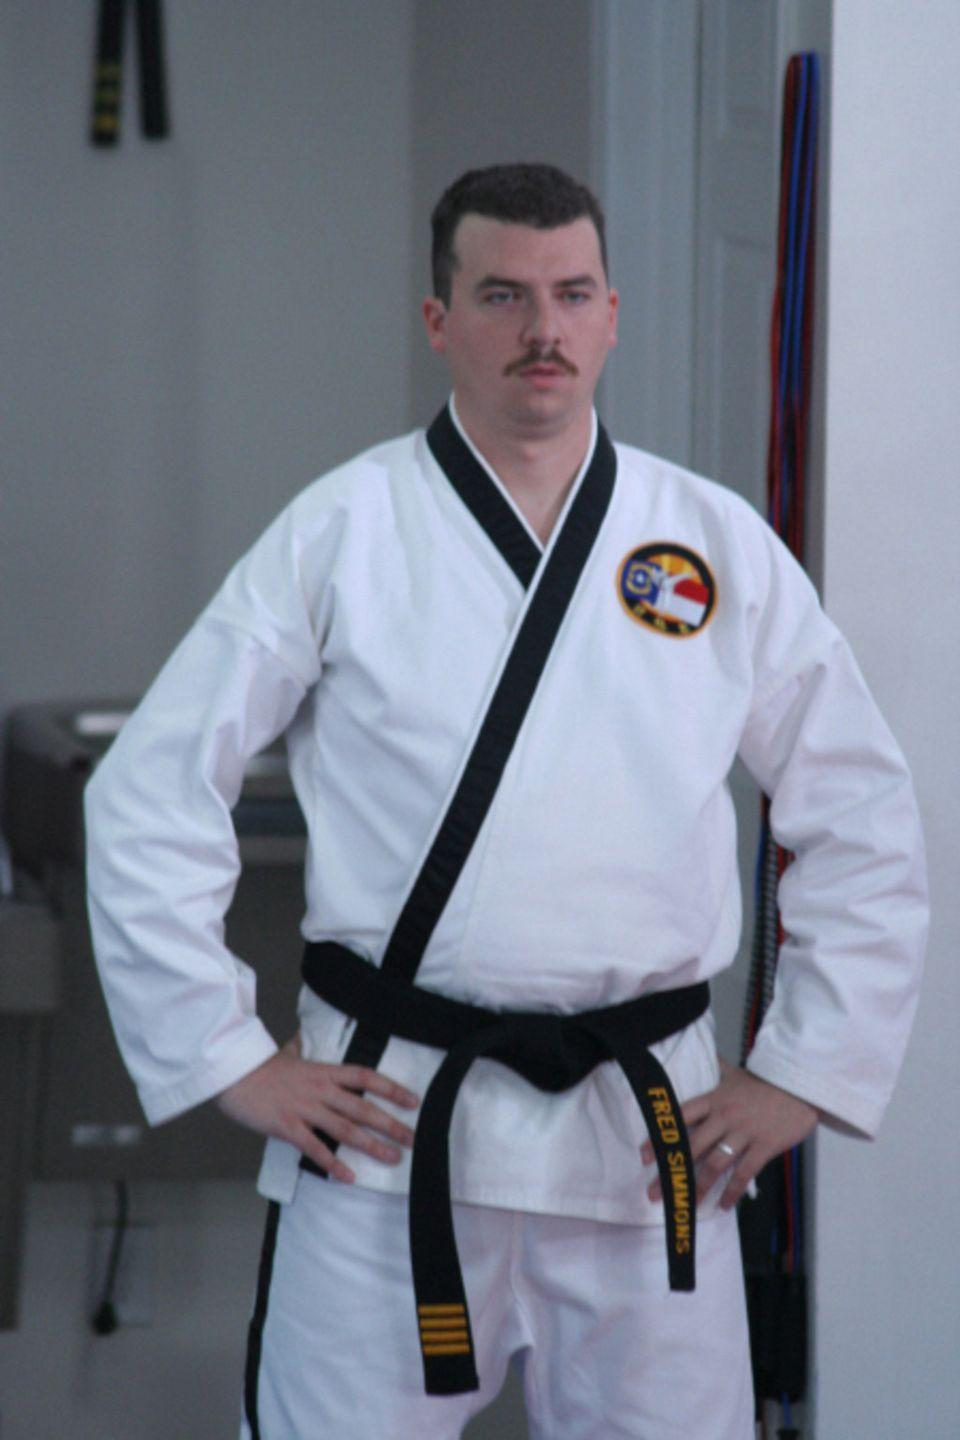 <p>A hapless Tae Kwon Do instructor sees his life upended when his wife announces that she's cheated on him with her boss—and she's leaving him for her new man—in this comedy starring Danny McBride, directed by his longtime collaborator Jody Hill. </p>